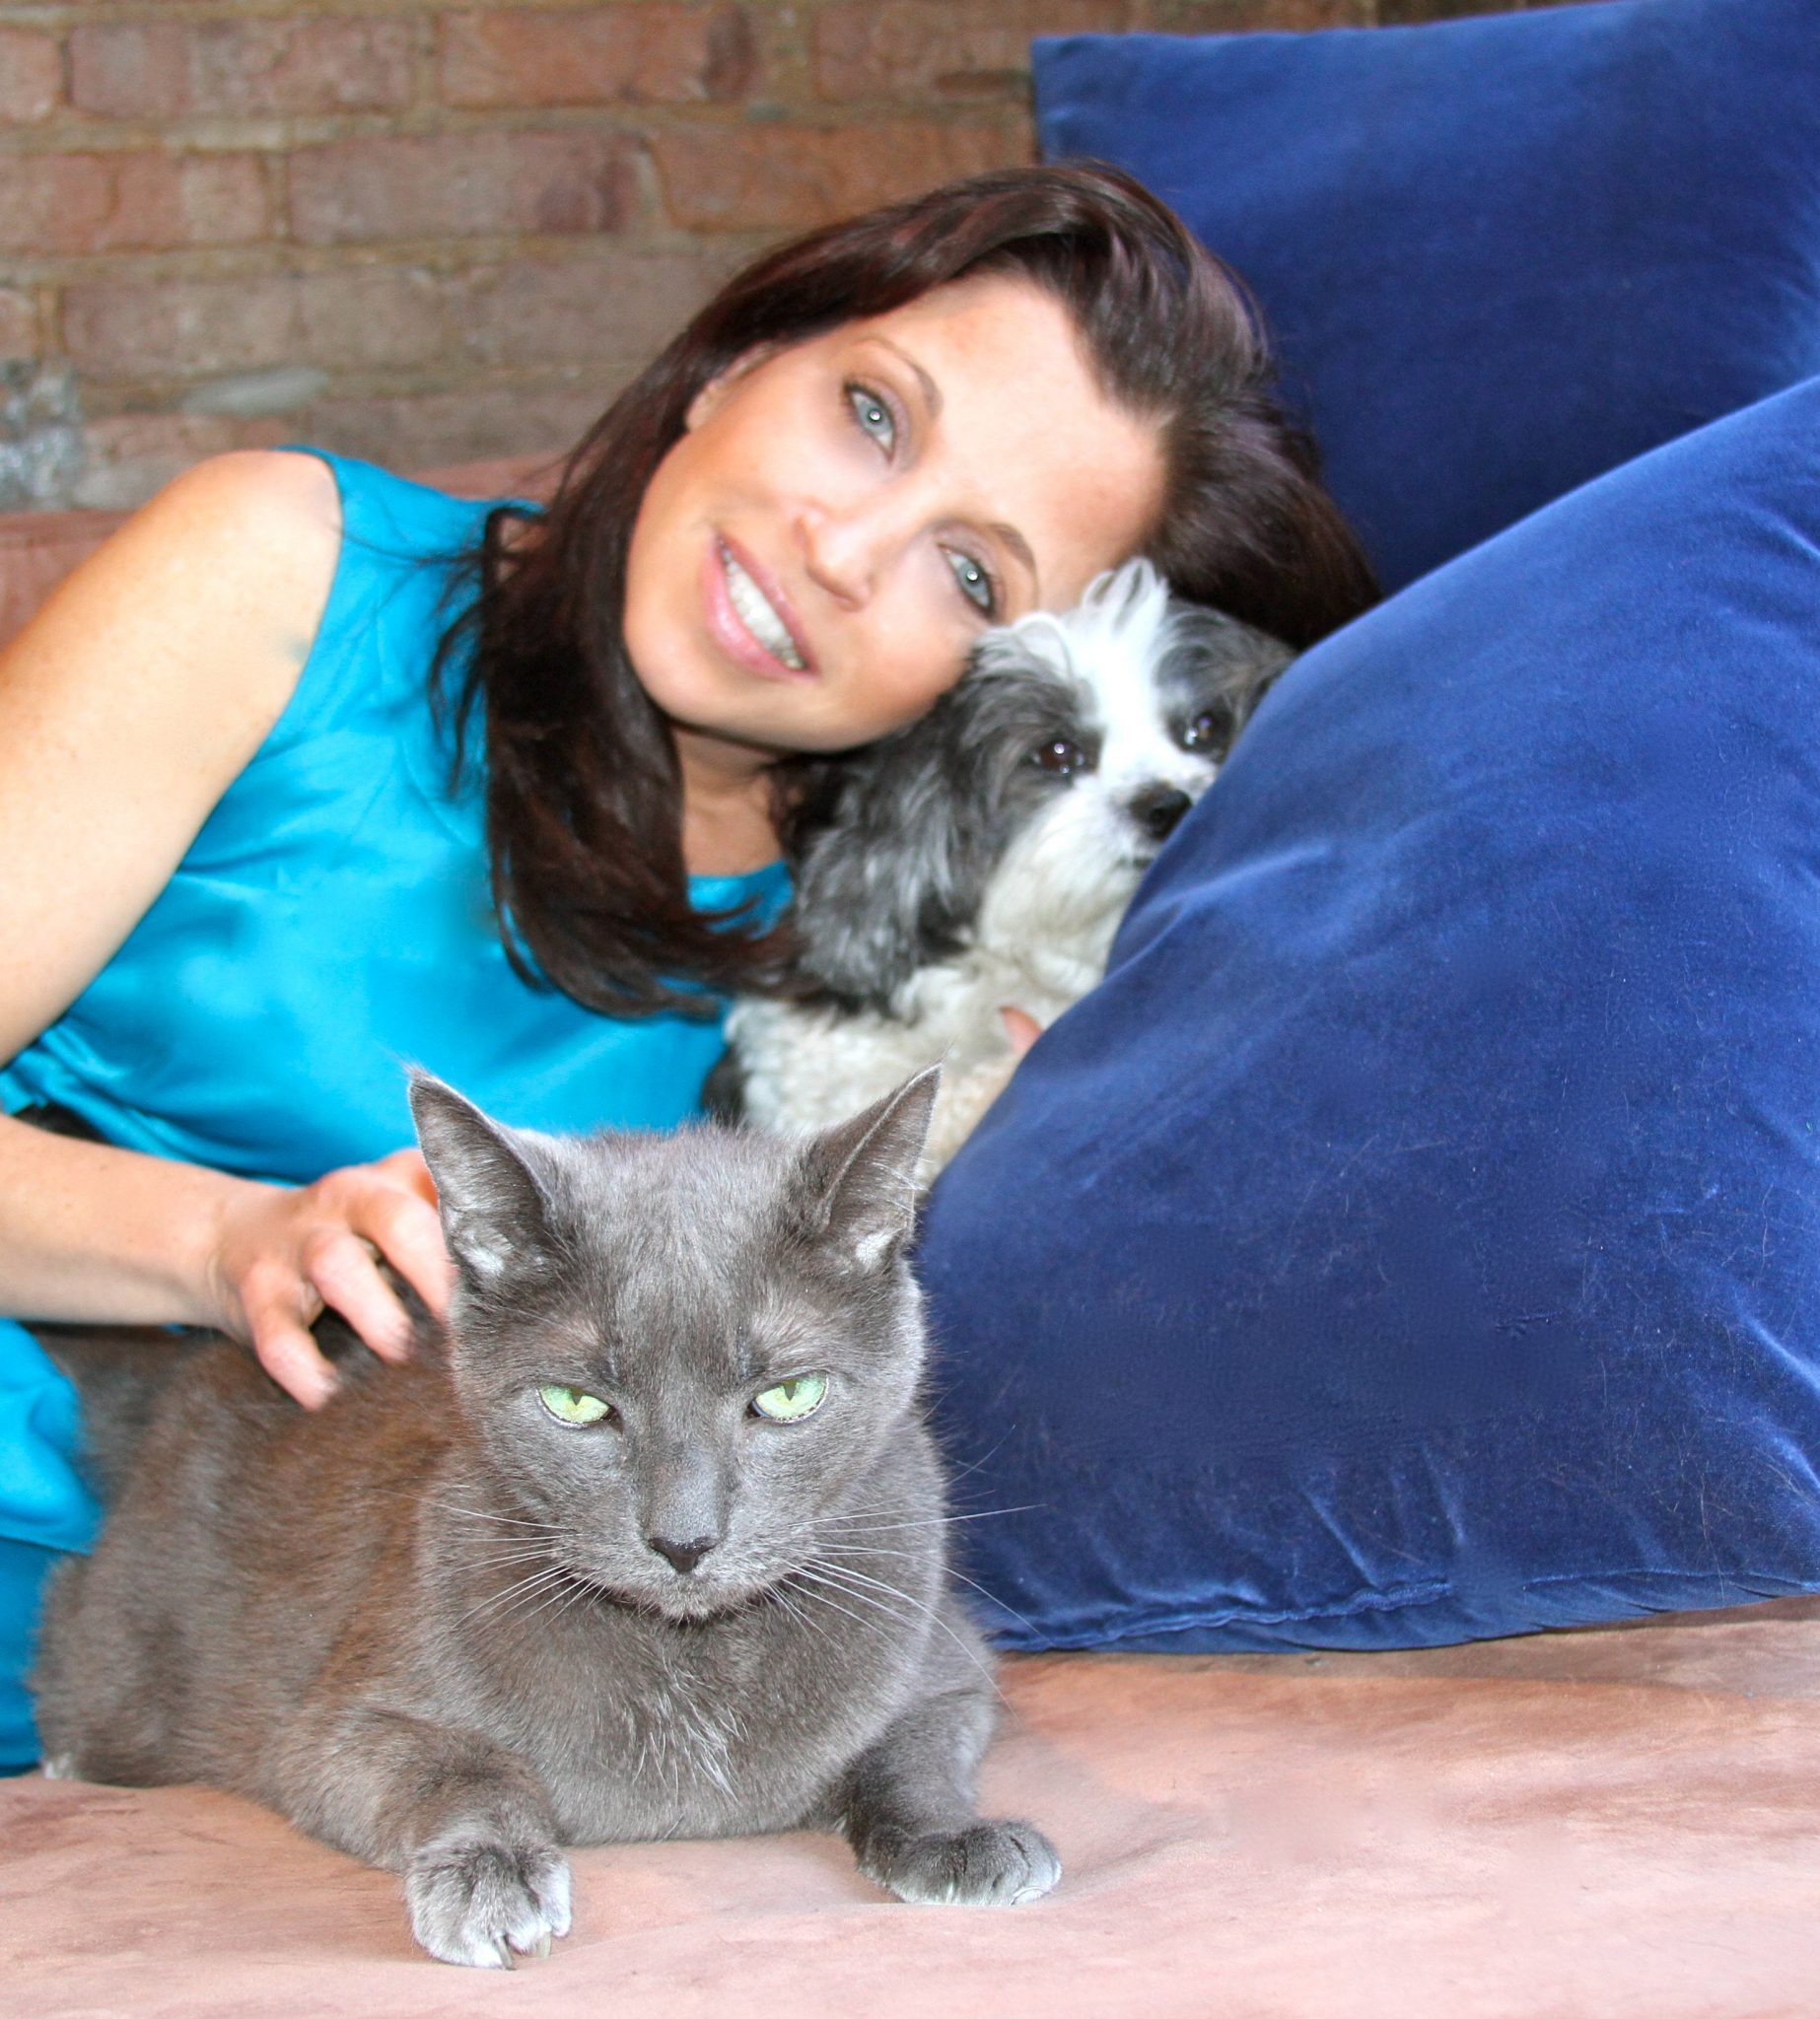 Wendy Diamond Named Animal Ambassador For G2G Collection! Billion Dollars 4 Charity!